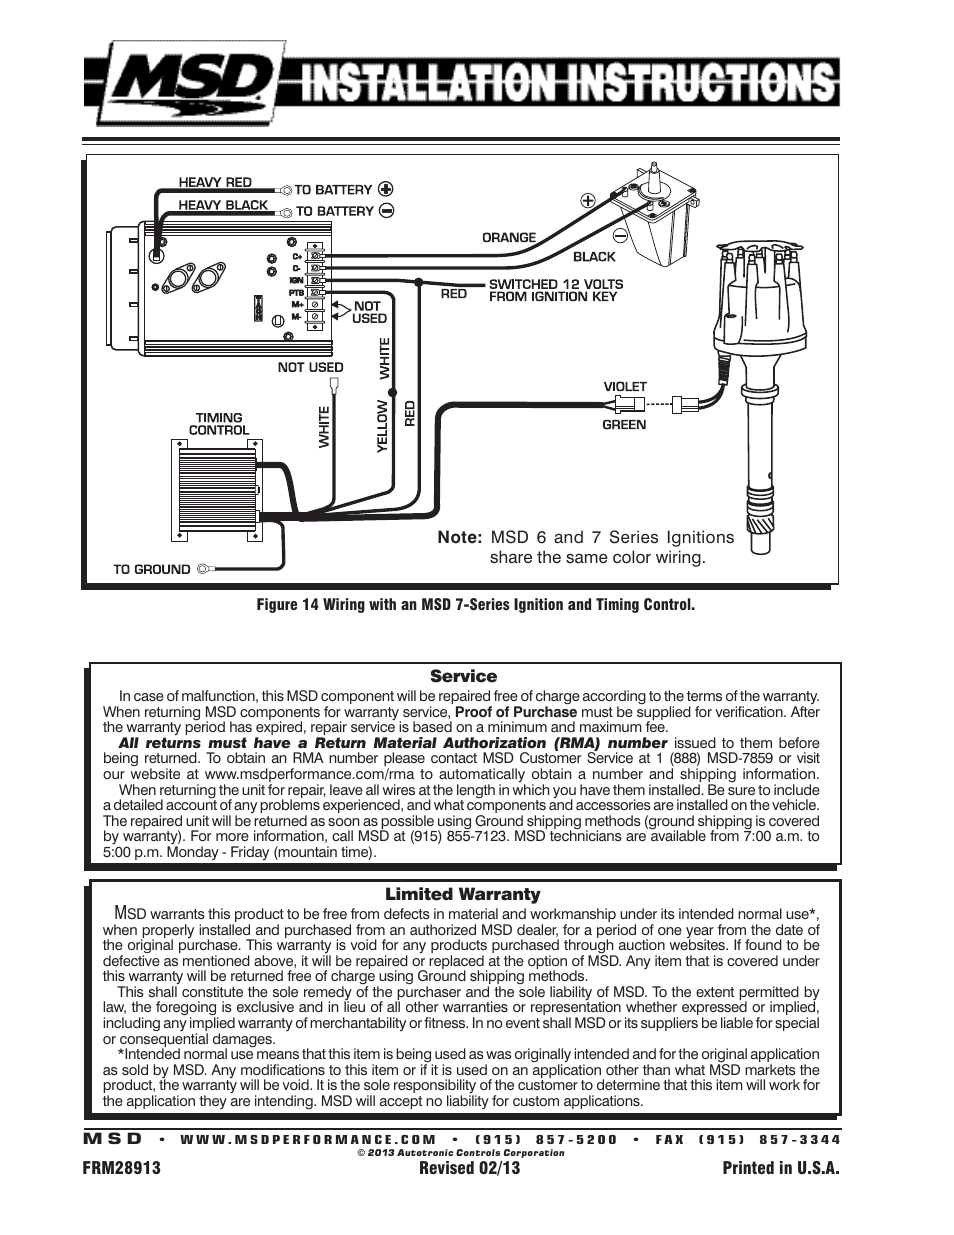 Hei Distributor Wiring Instructions Solutions 79 Chevy Diagram With Msd 8570 Data Diagrams